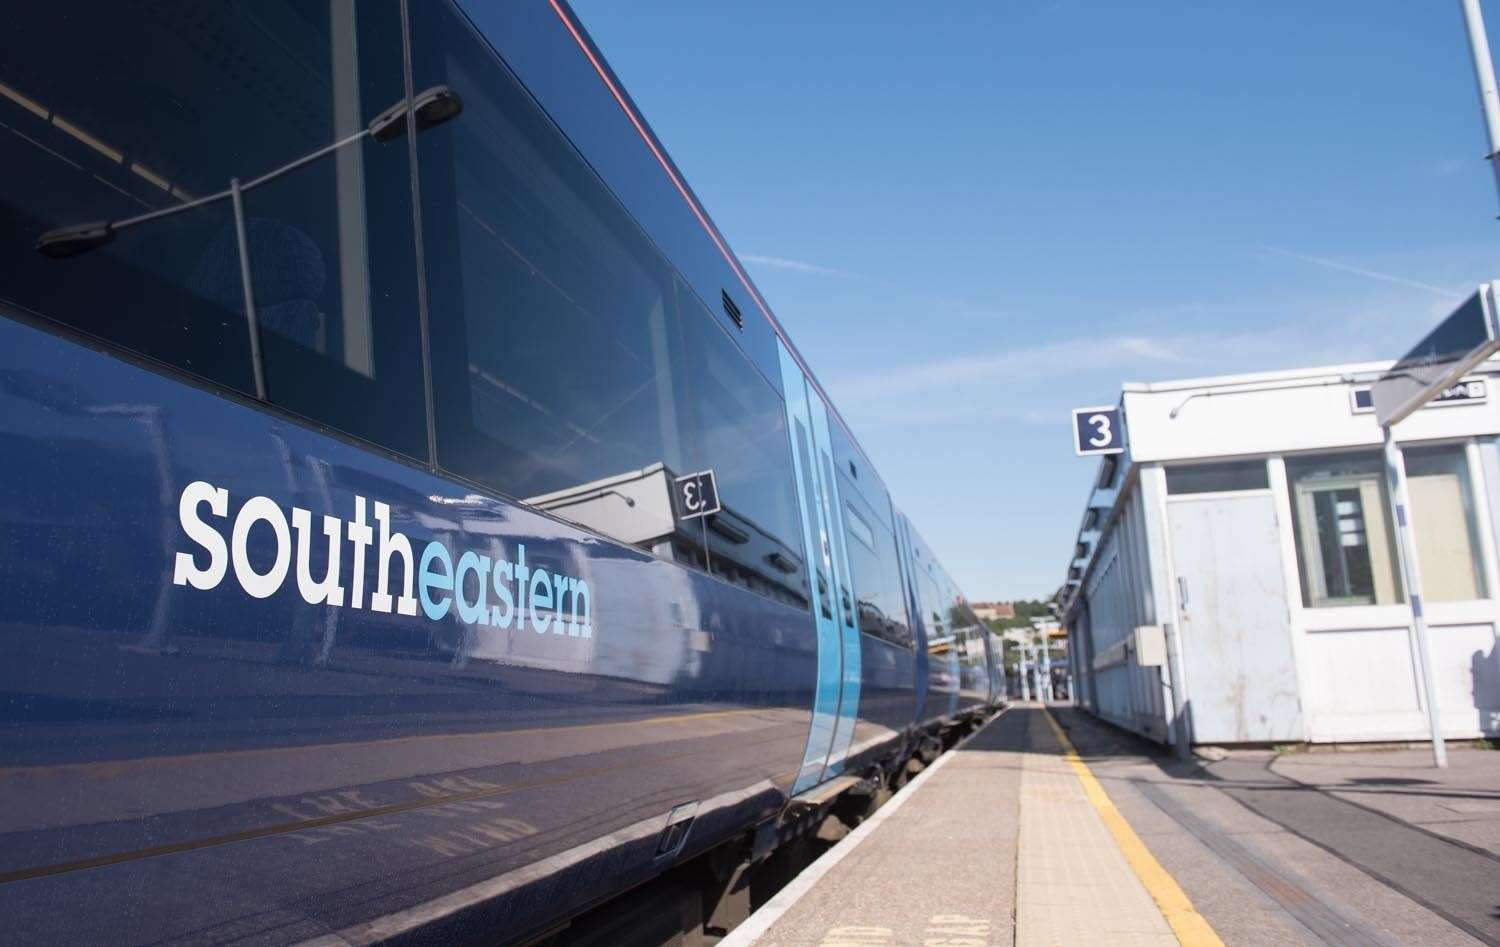 A Southeastern train. Stock picture